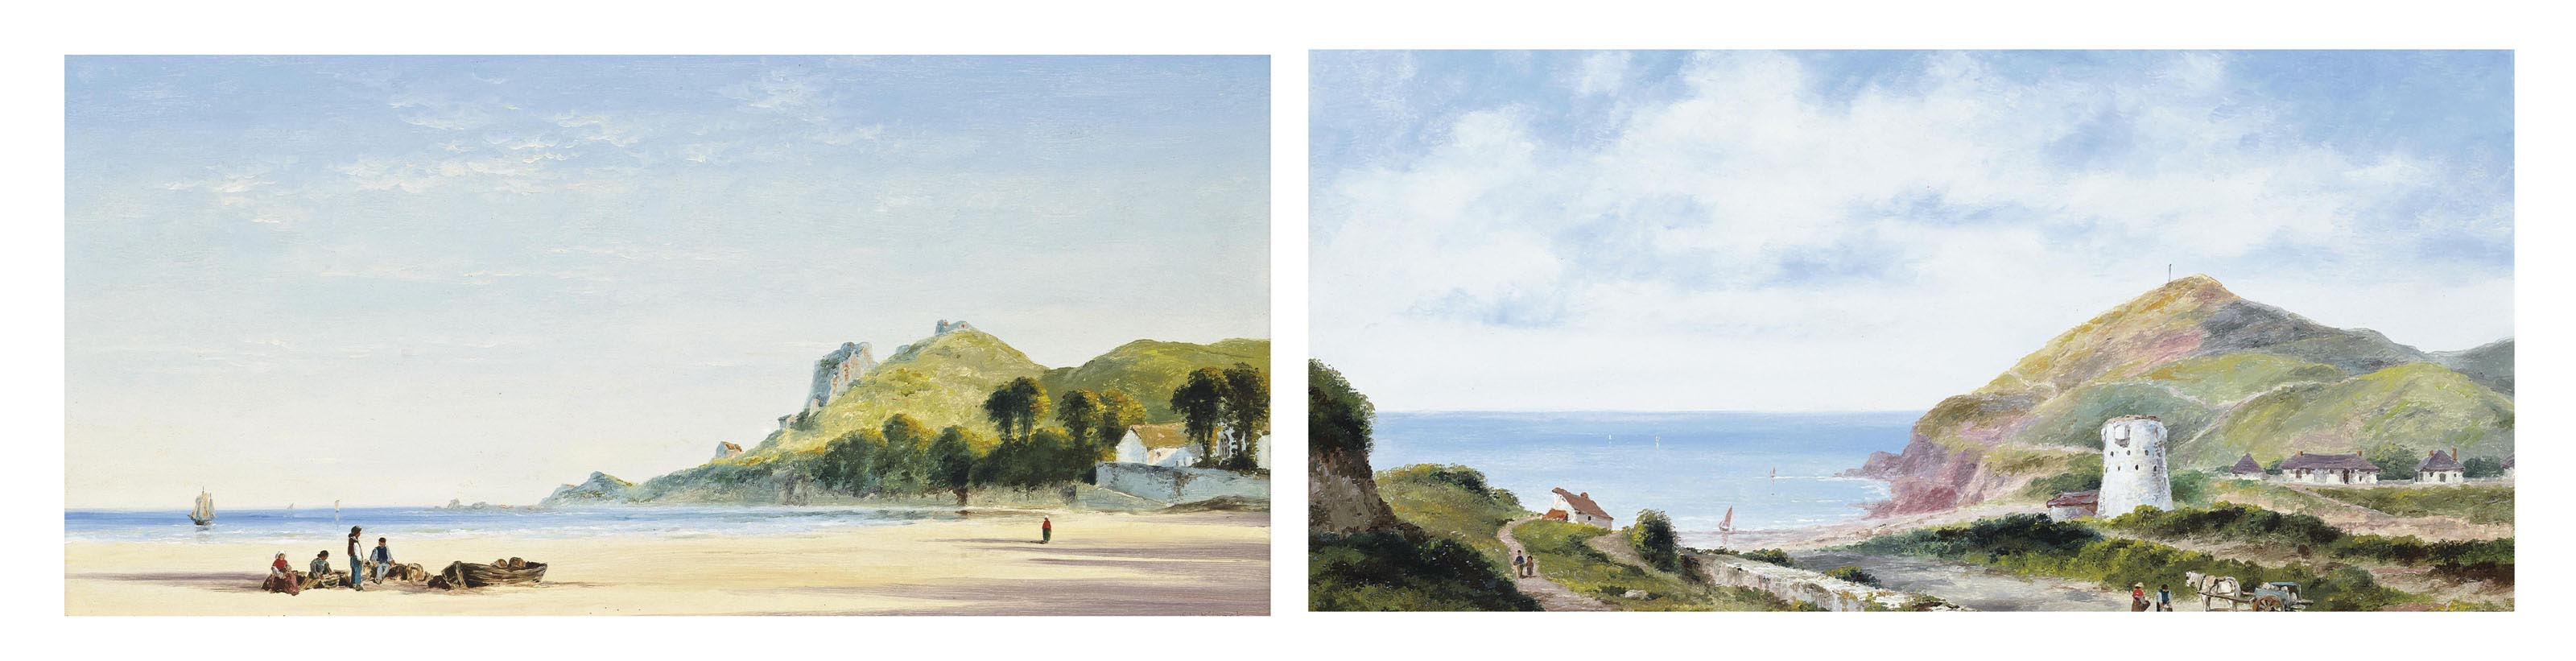 St Brelade's Bay, Jersey, at low tide; and Greve de Lecq, Jersey (both illustrated)